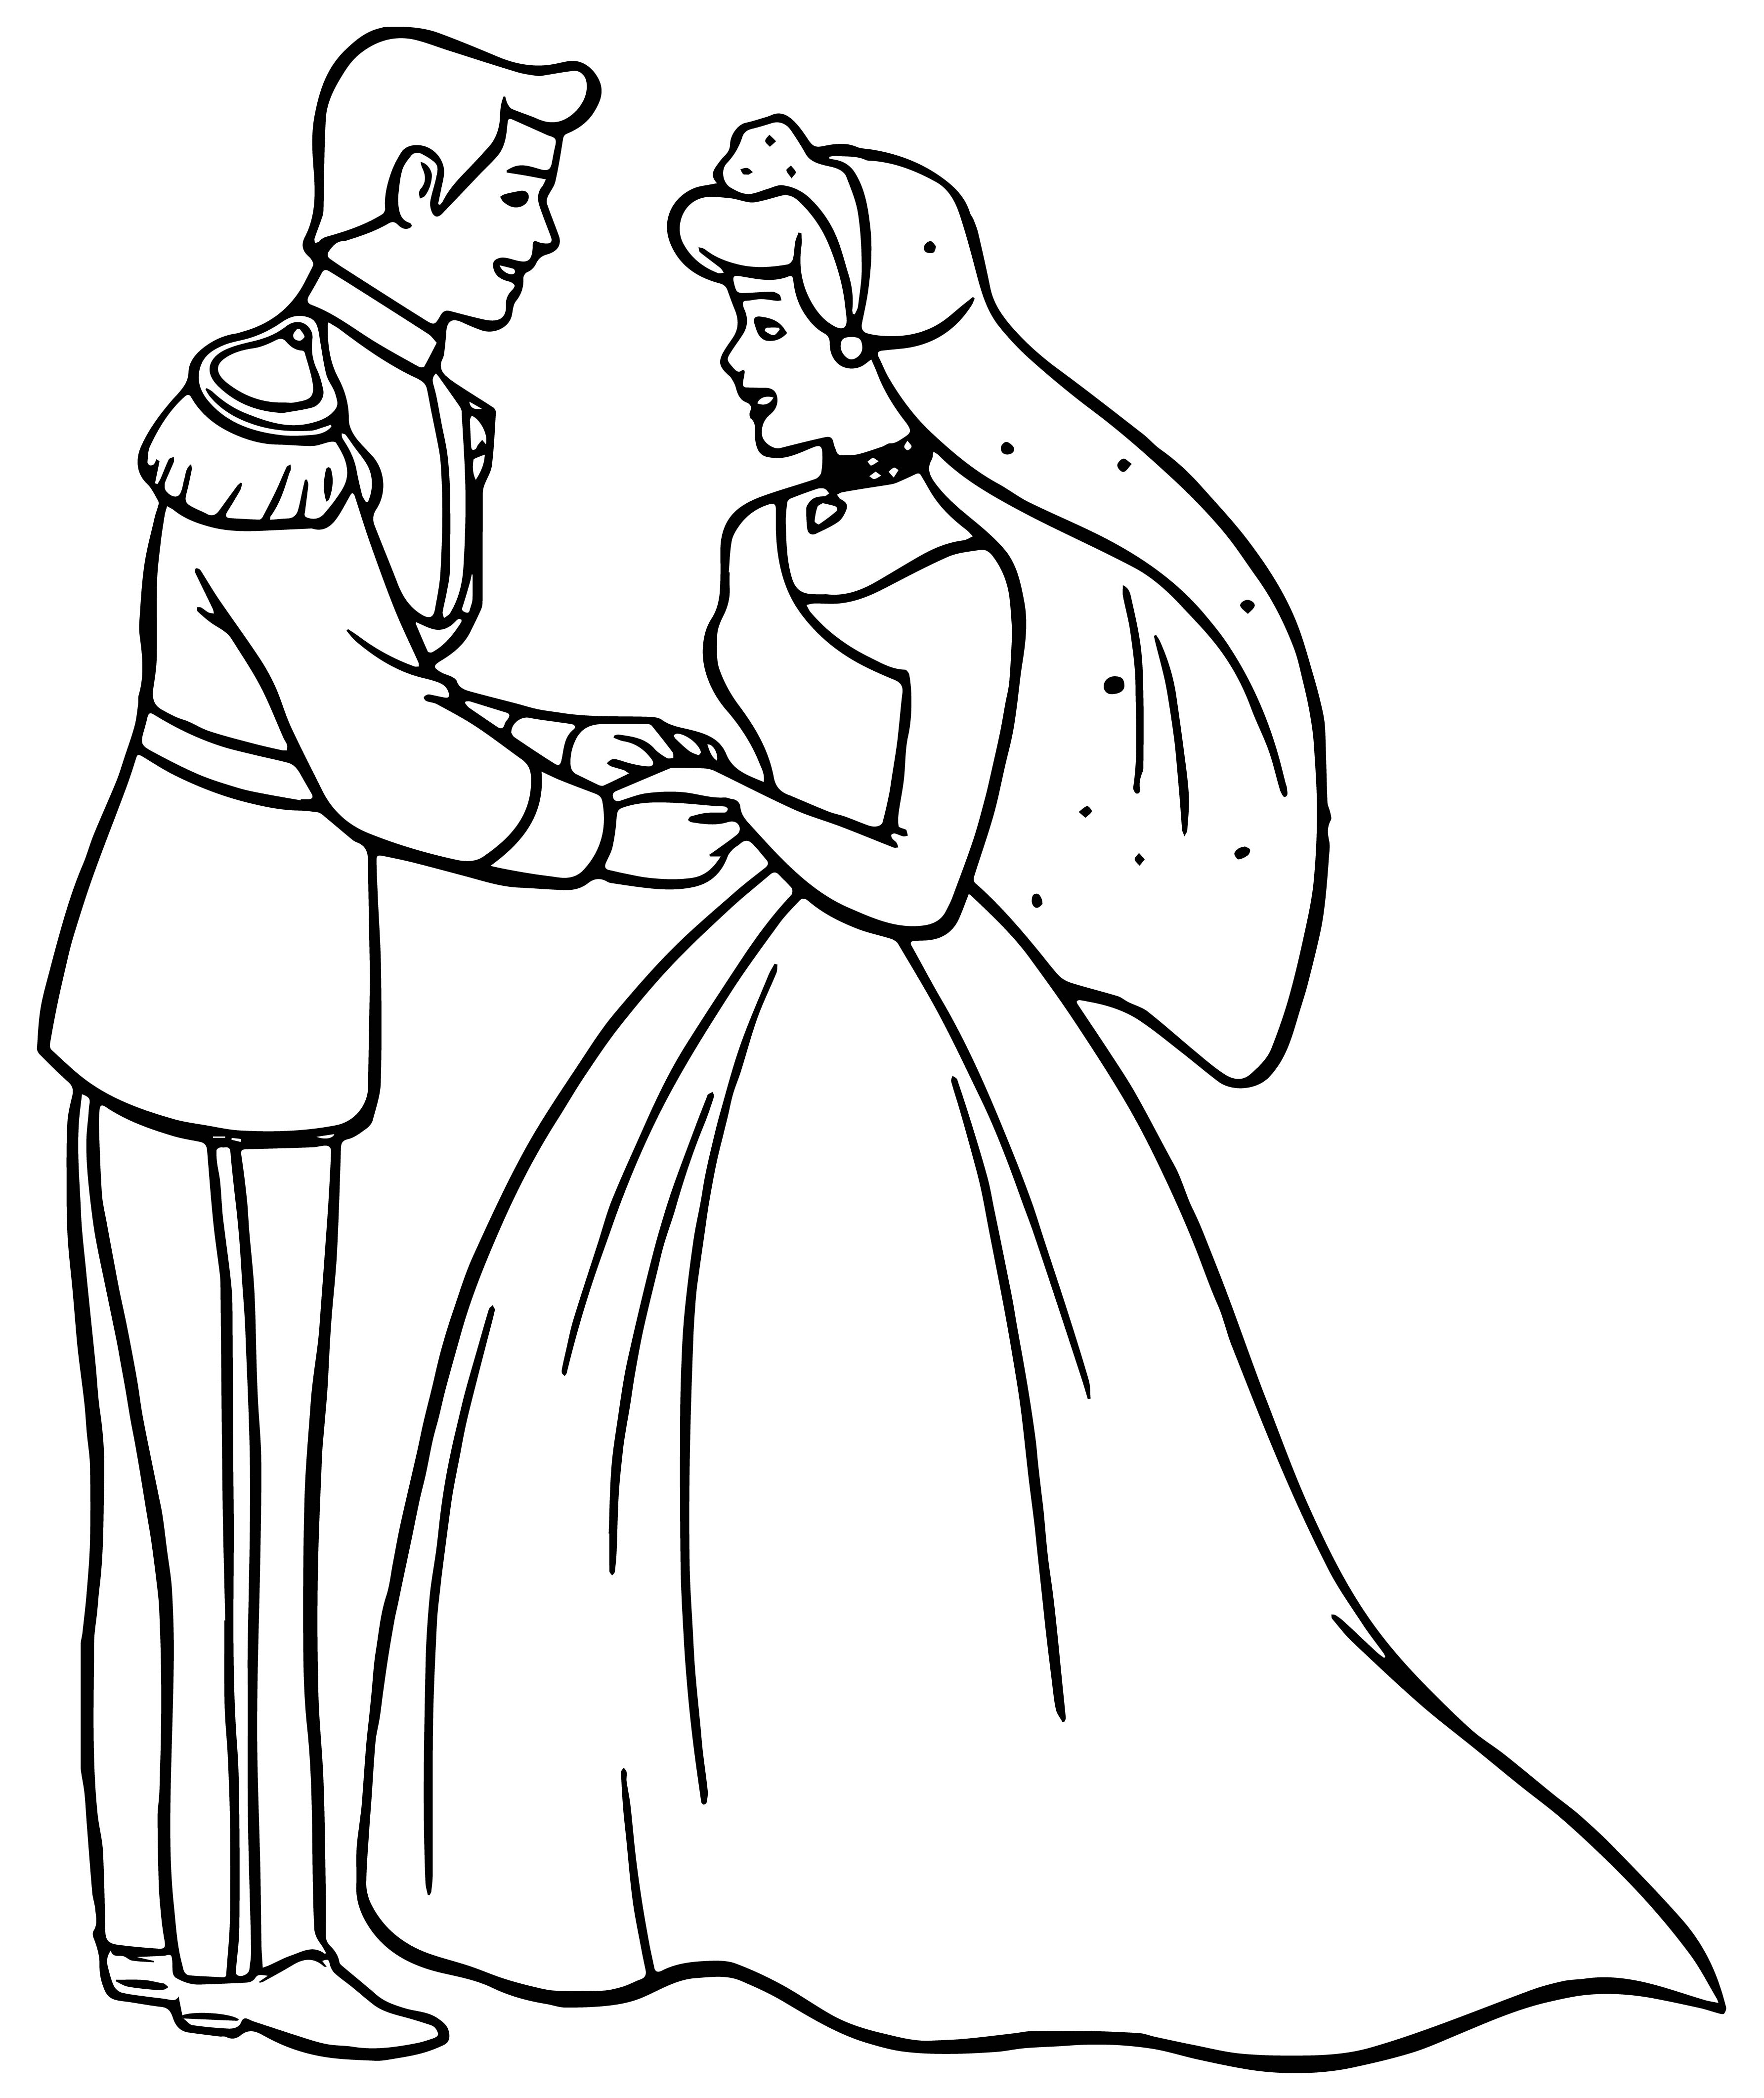 Cinderella Prince Charming Coloring Pages at GetColorings.com | Free ...